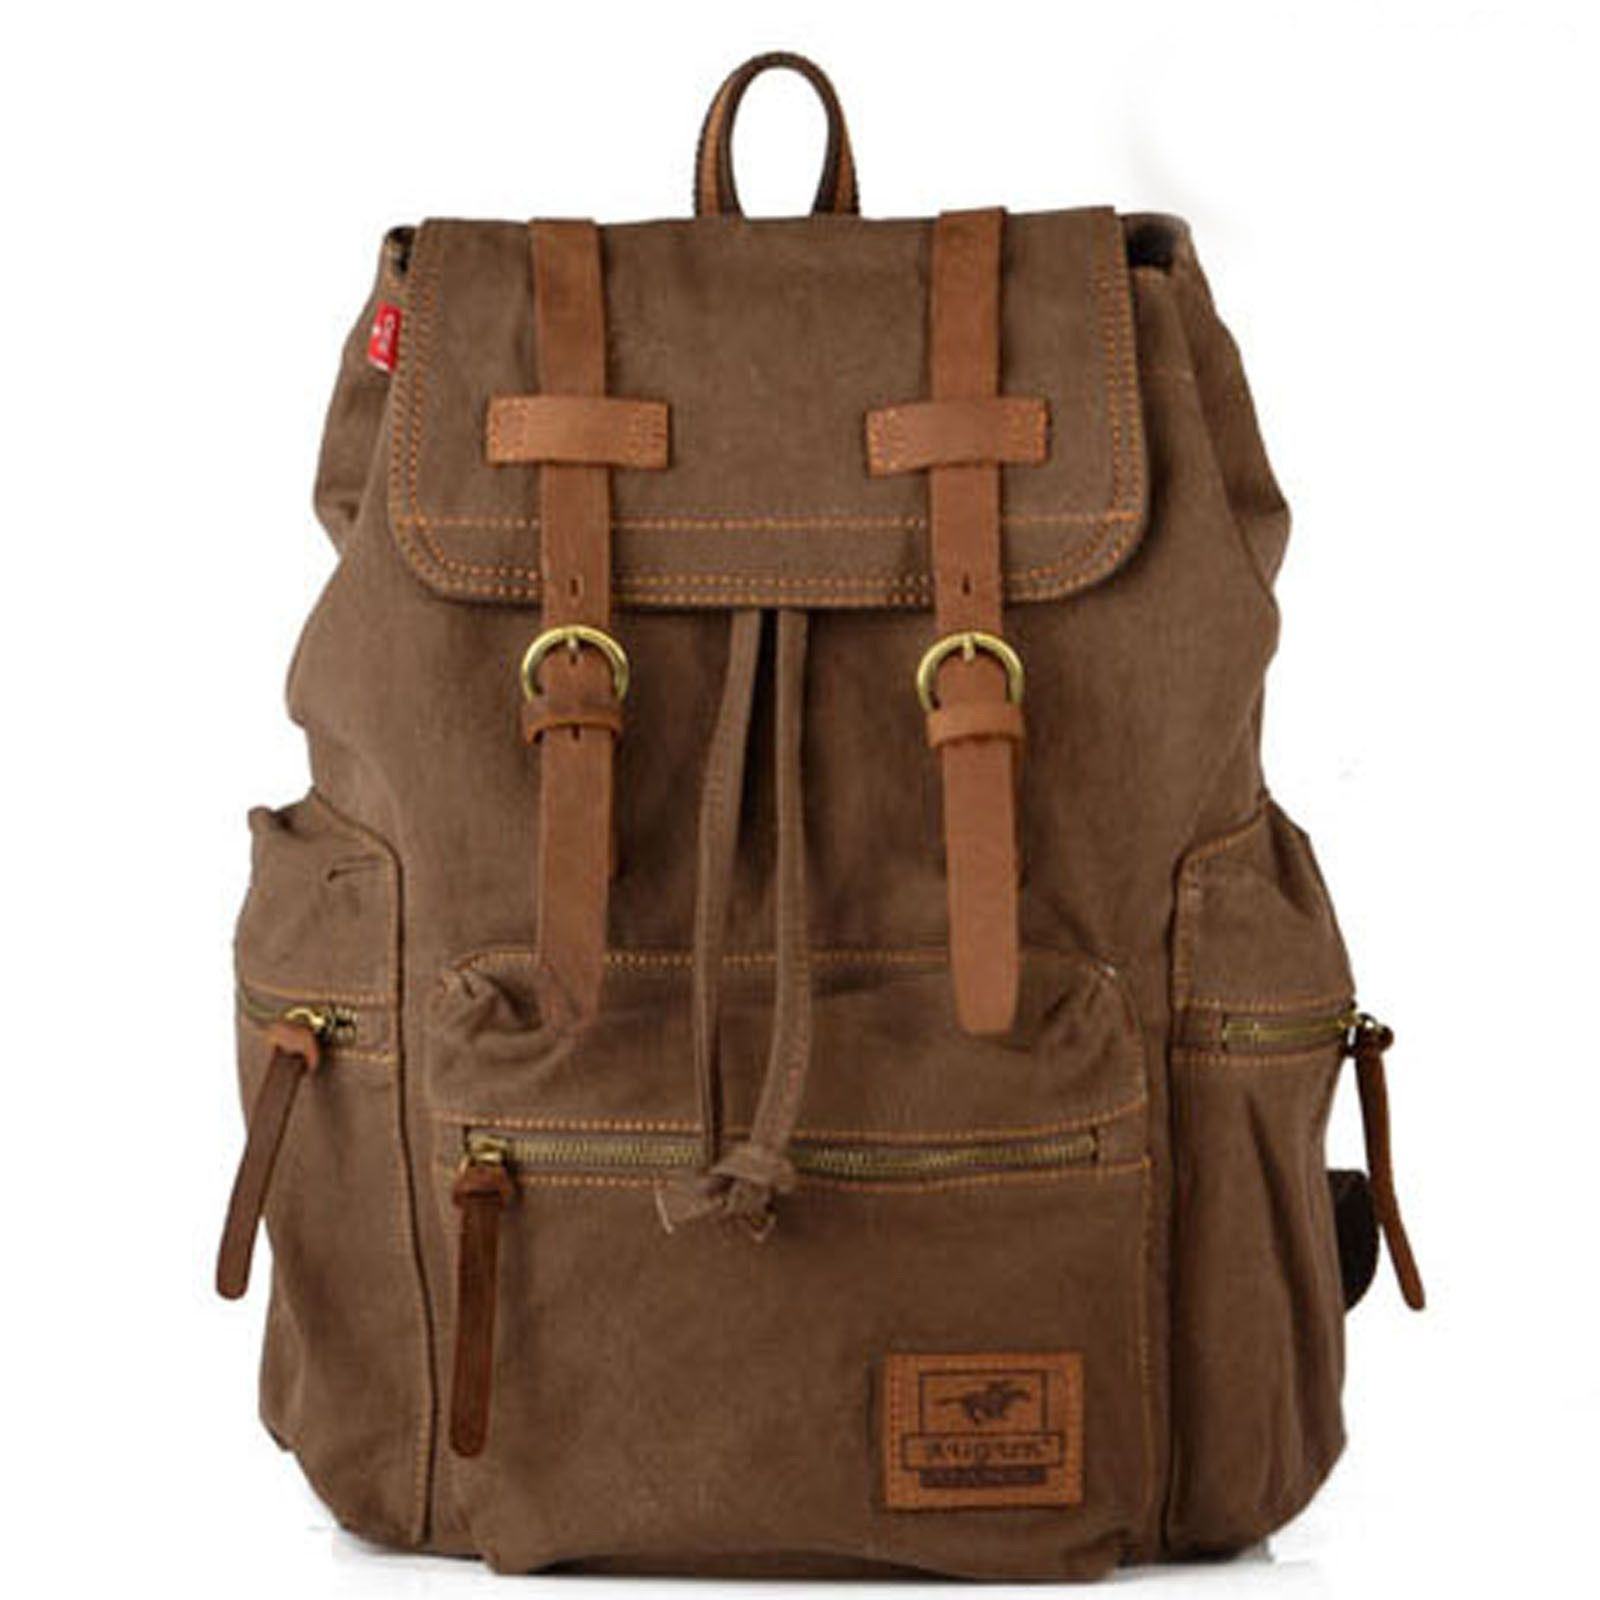 Sling bag on ebay - Vintage Women Men Canvas Backpack Leather Trim Bag Rucksack Shoulder Bag Hw09 Ebay